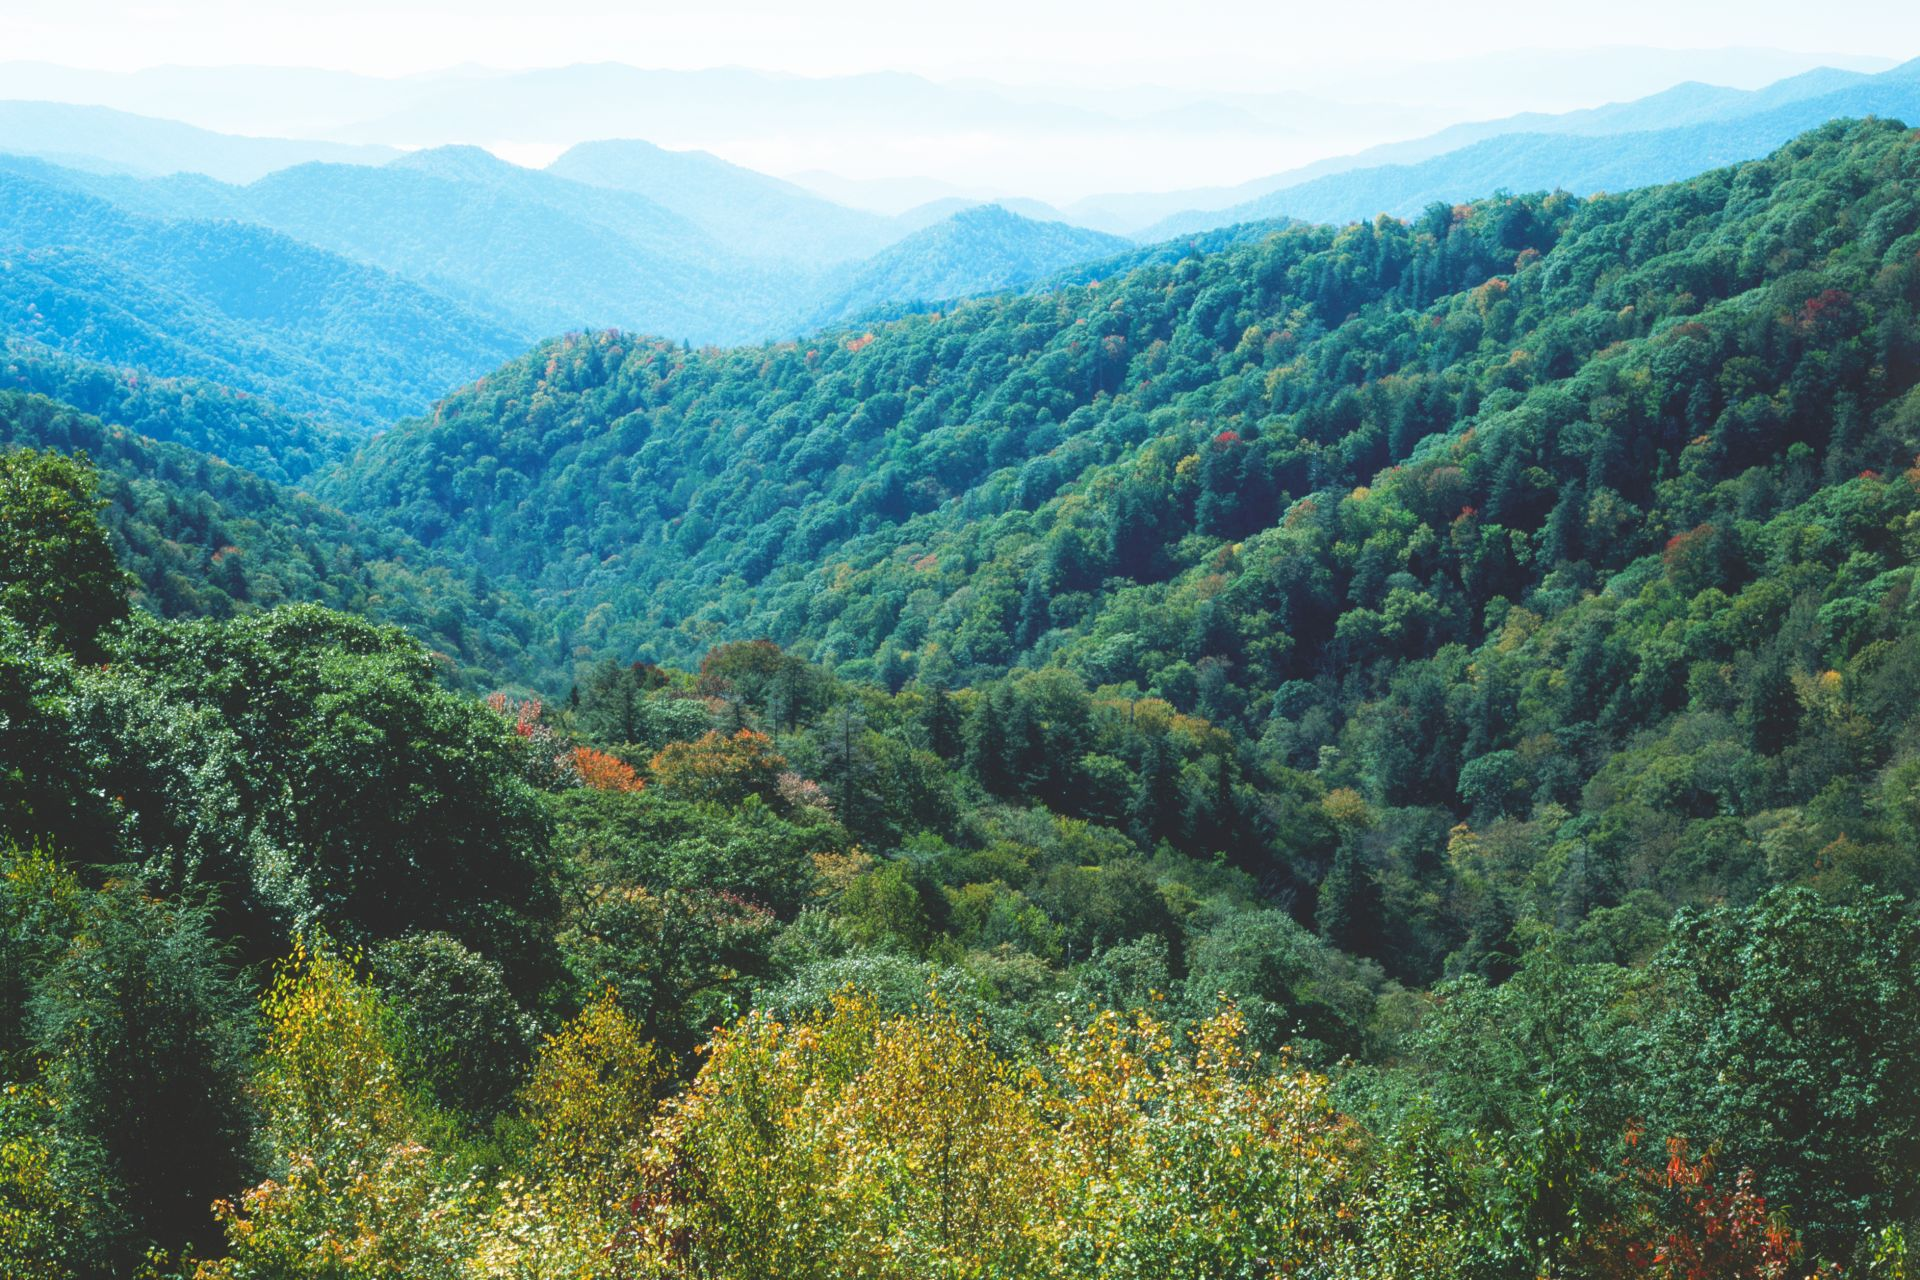 appalachian mountains essay There were several feuds in the appalachian mountains but the final one was the longest-lasting of them all breathitt county has been plagued by violence since the little hell.